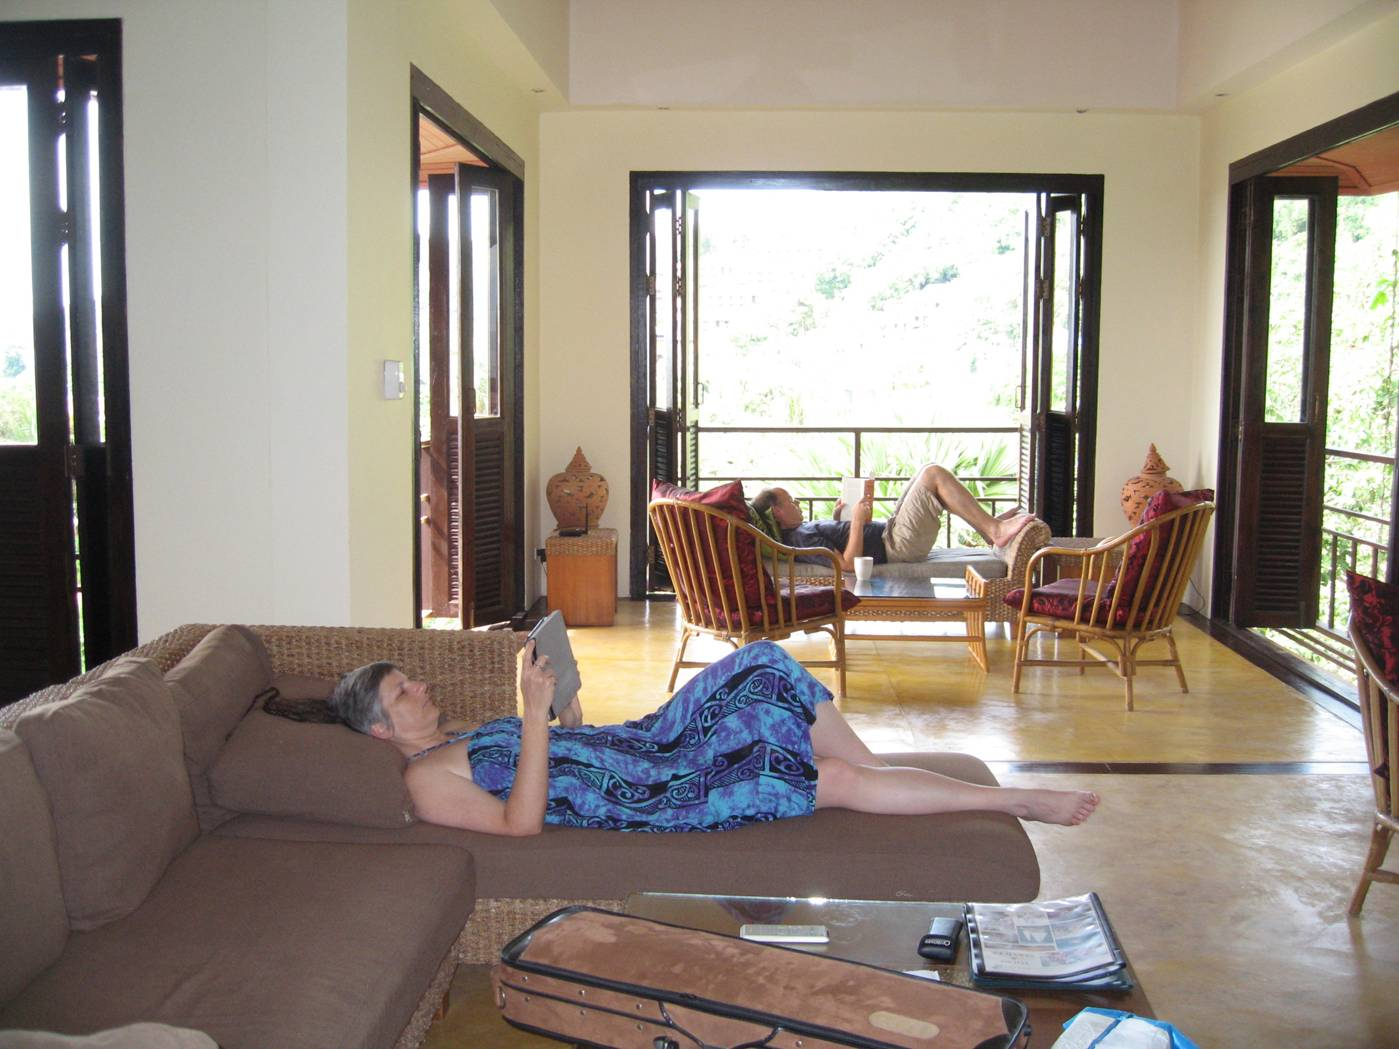 Picture:  Ruth and Ken relax in the villa, Karon Beach, Phuket, Thailand.